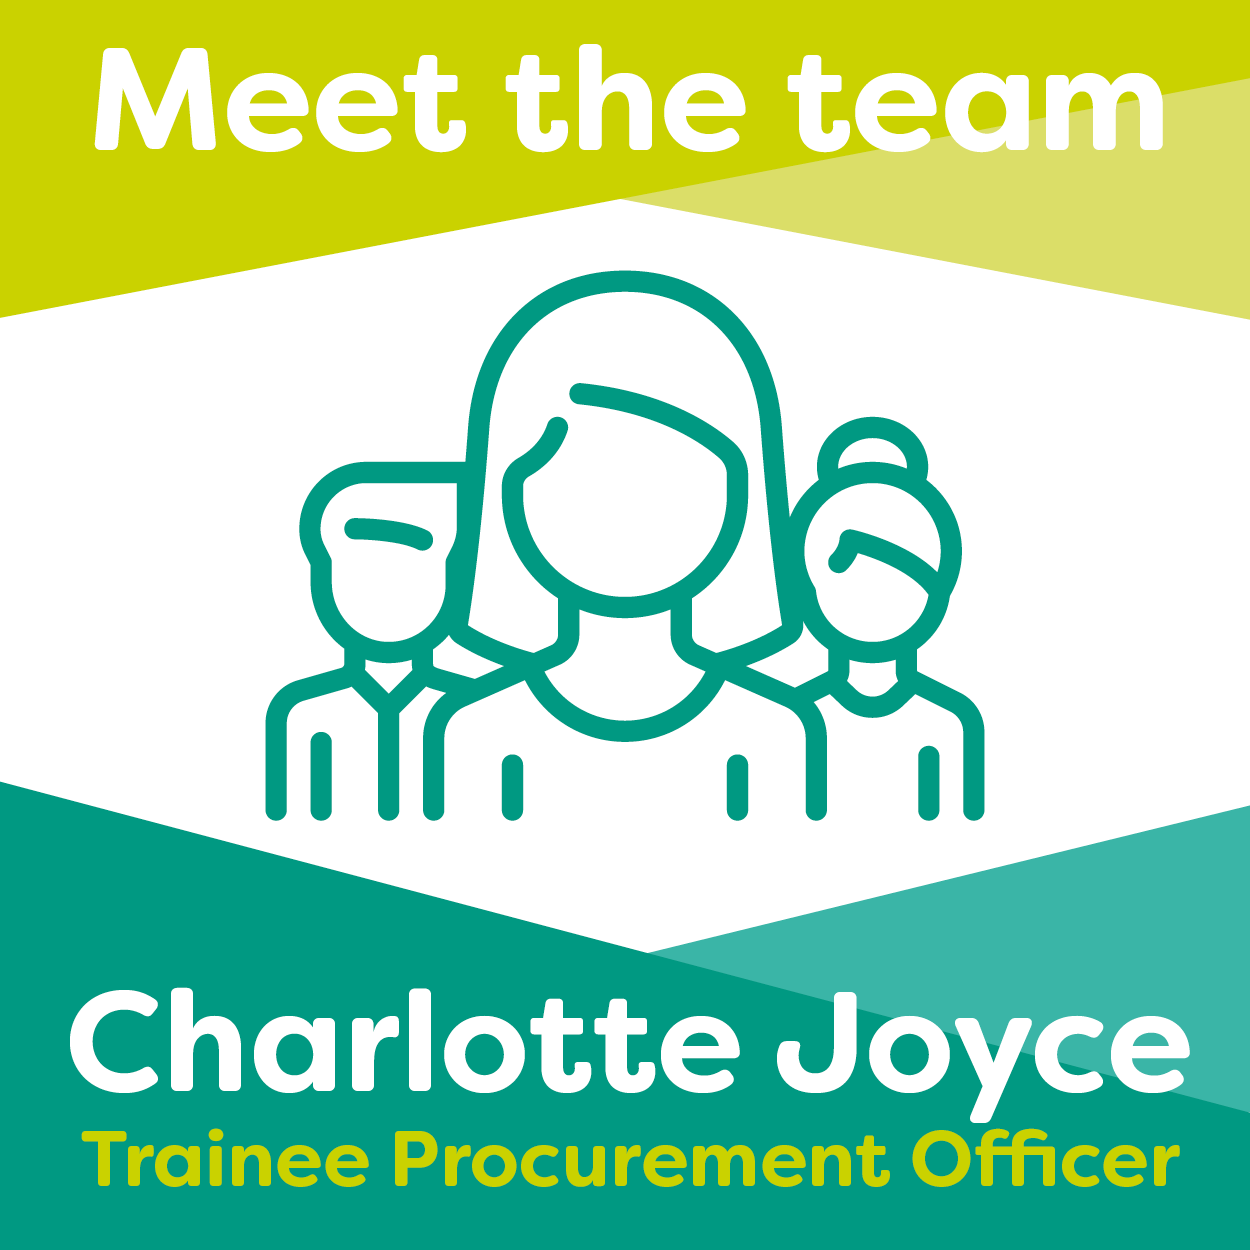 Meet Charlotte Joyce, one of our Trainee Procurement Officers